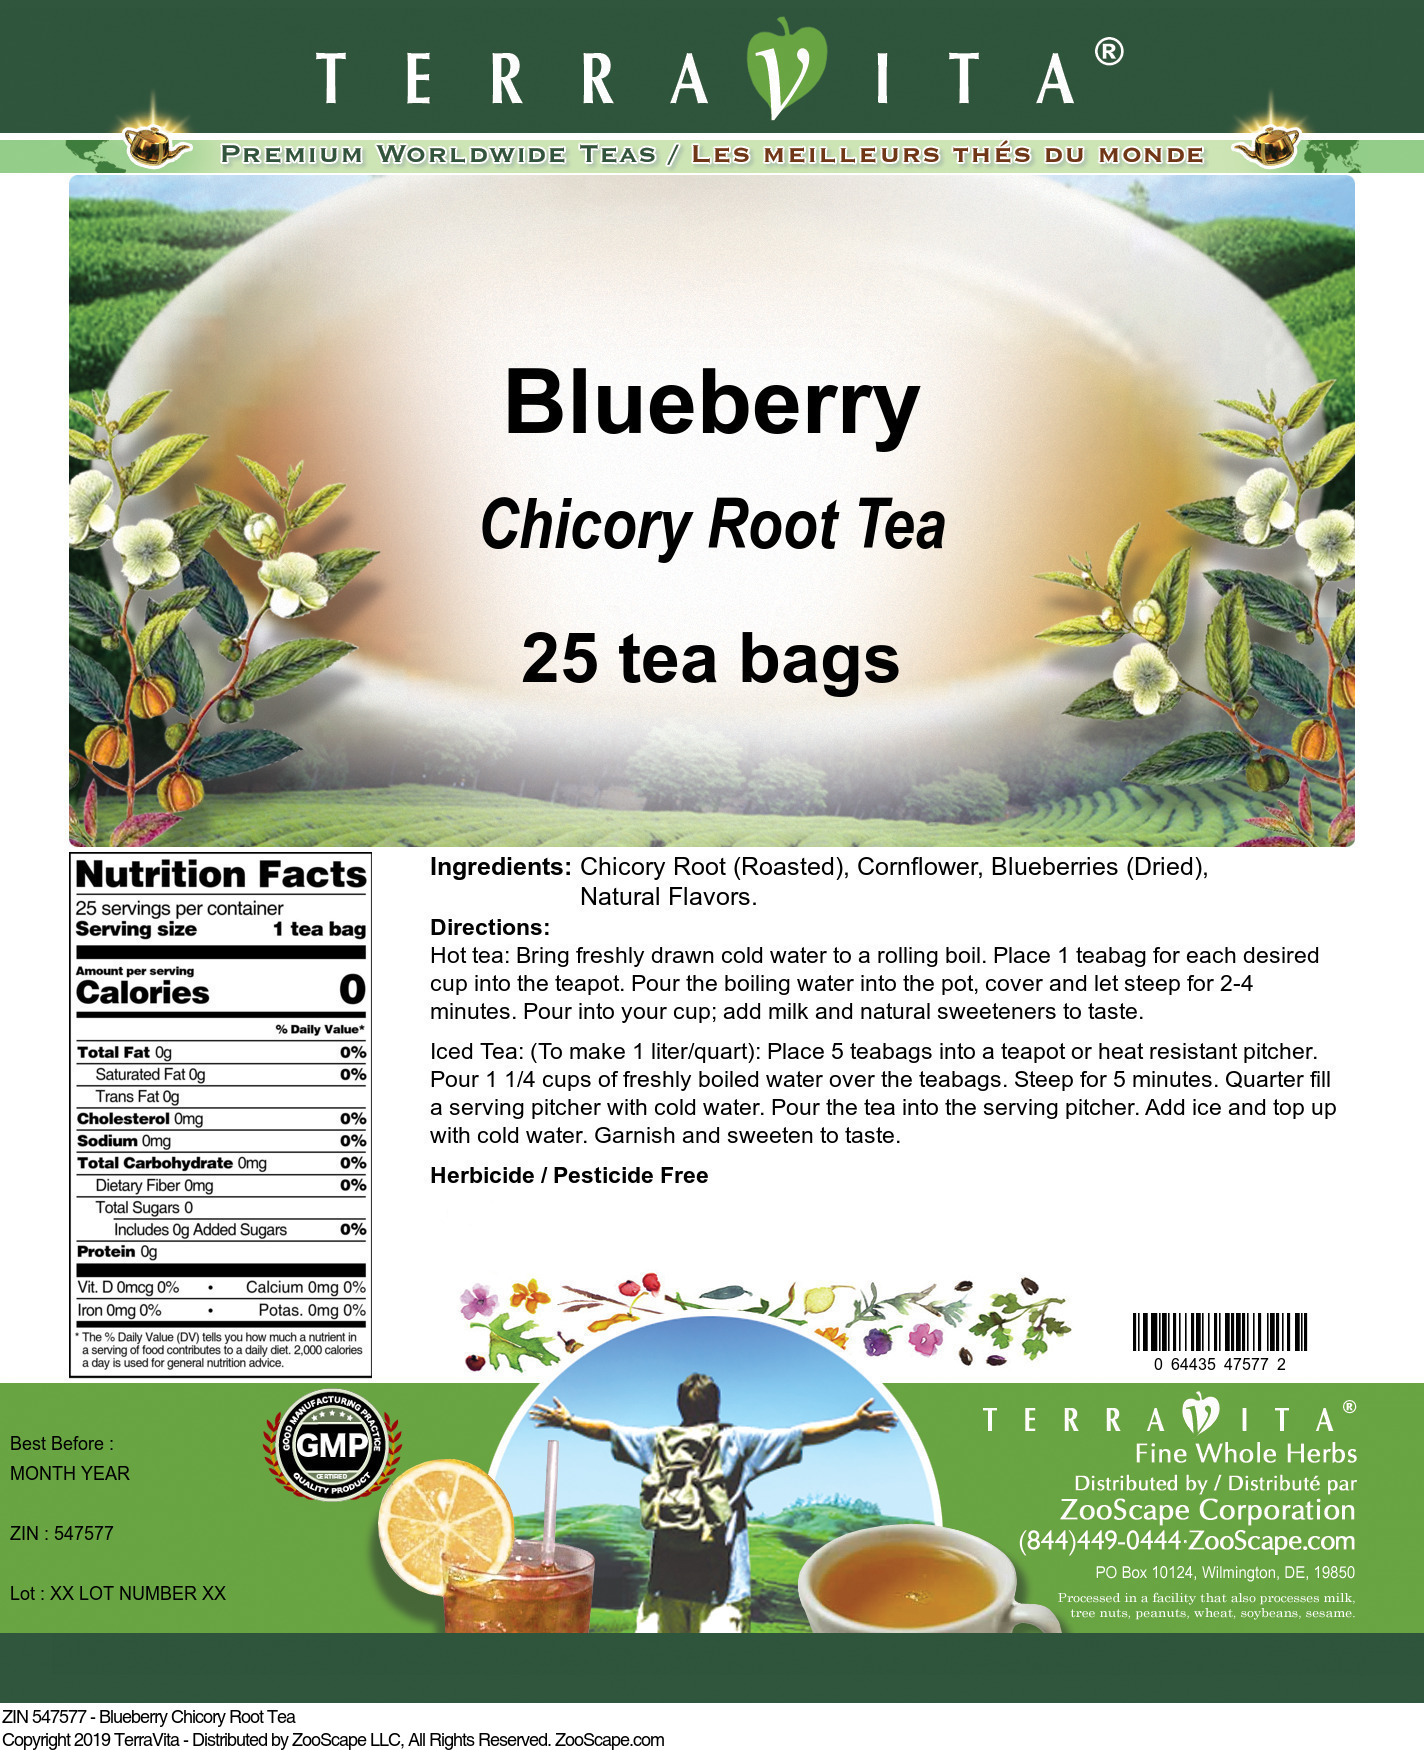 Blueberry Chicory Root